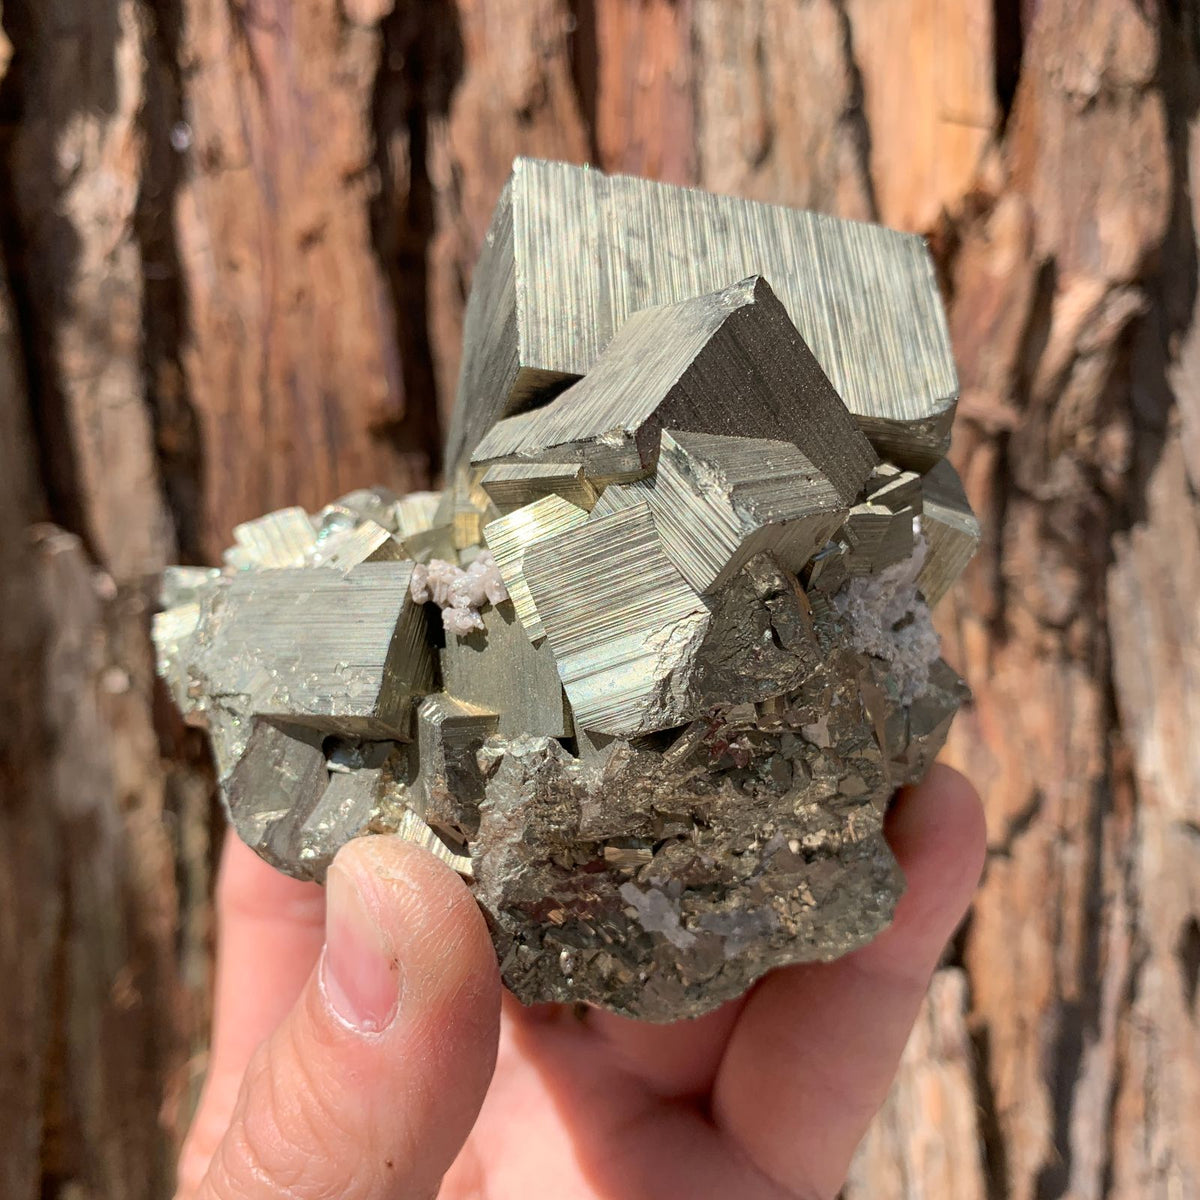 9cm 840g Pyrite with Clear Quartz from Hubei, China